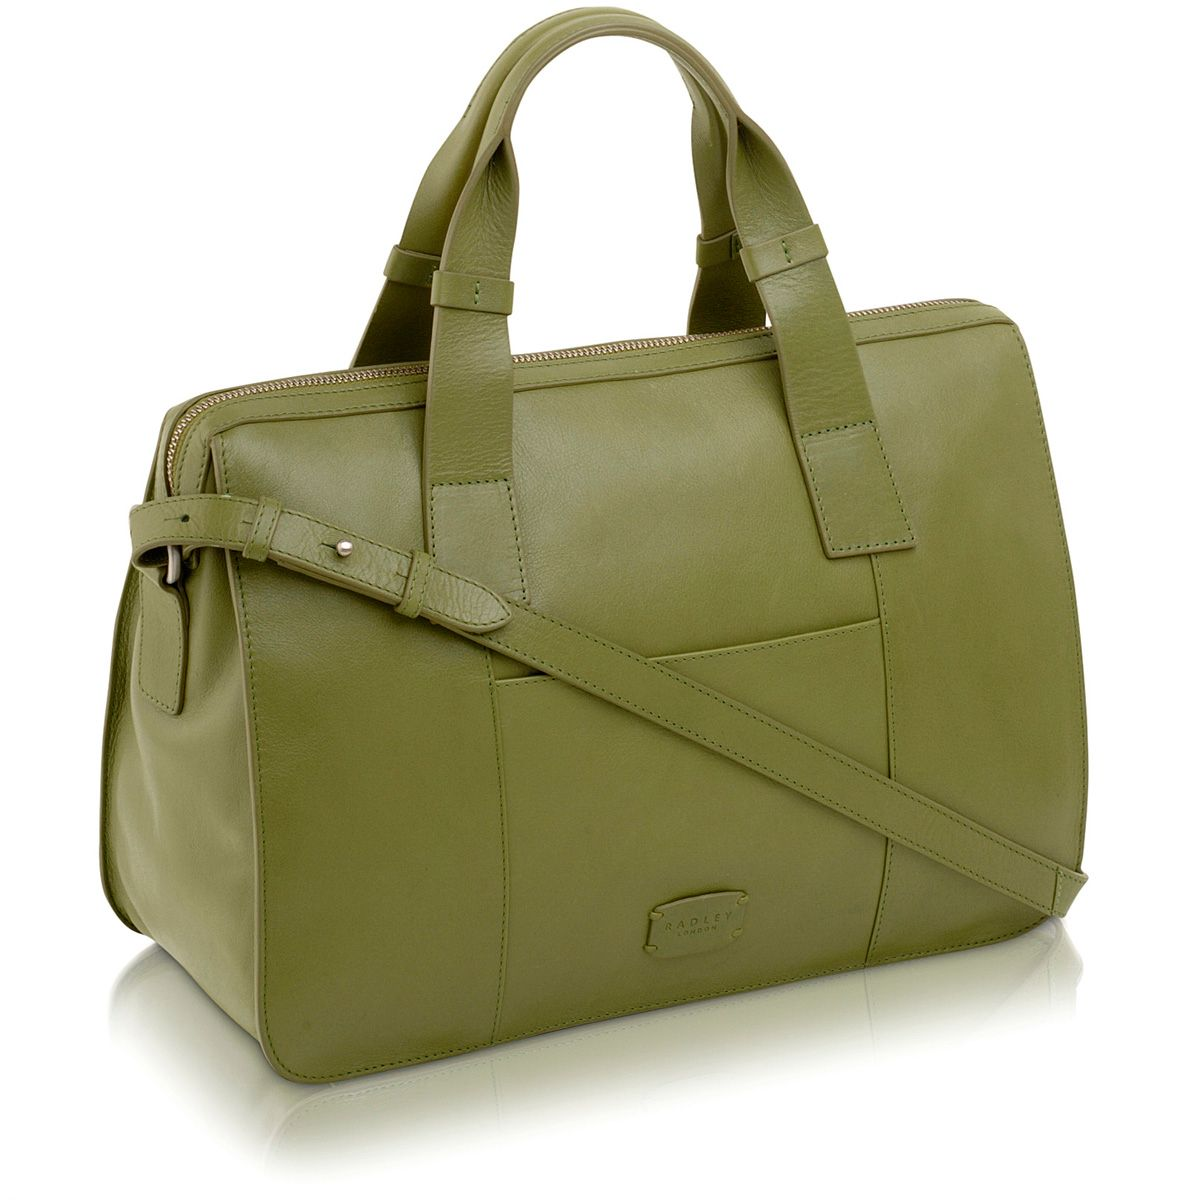 Green large cross body tote bag